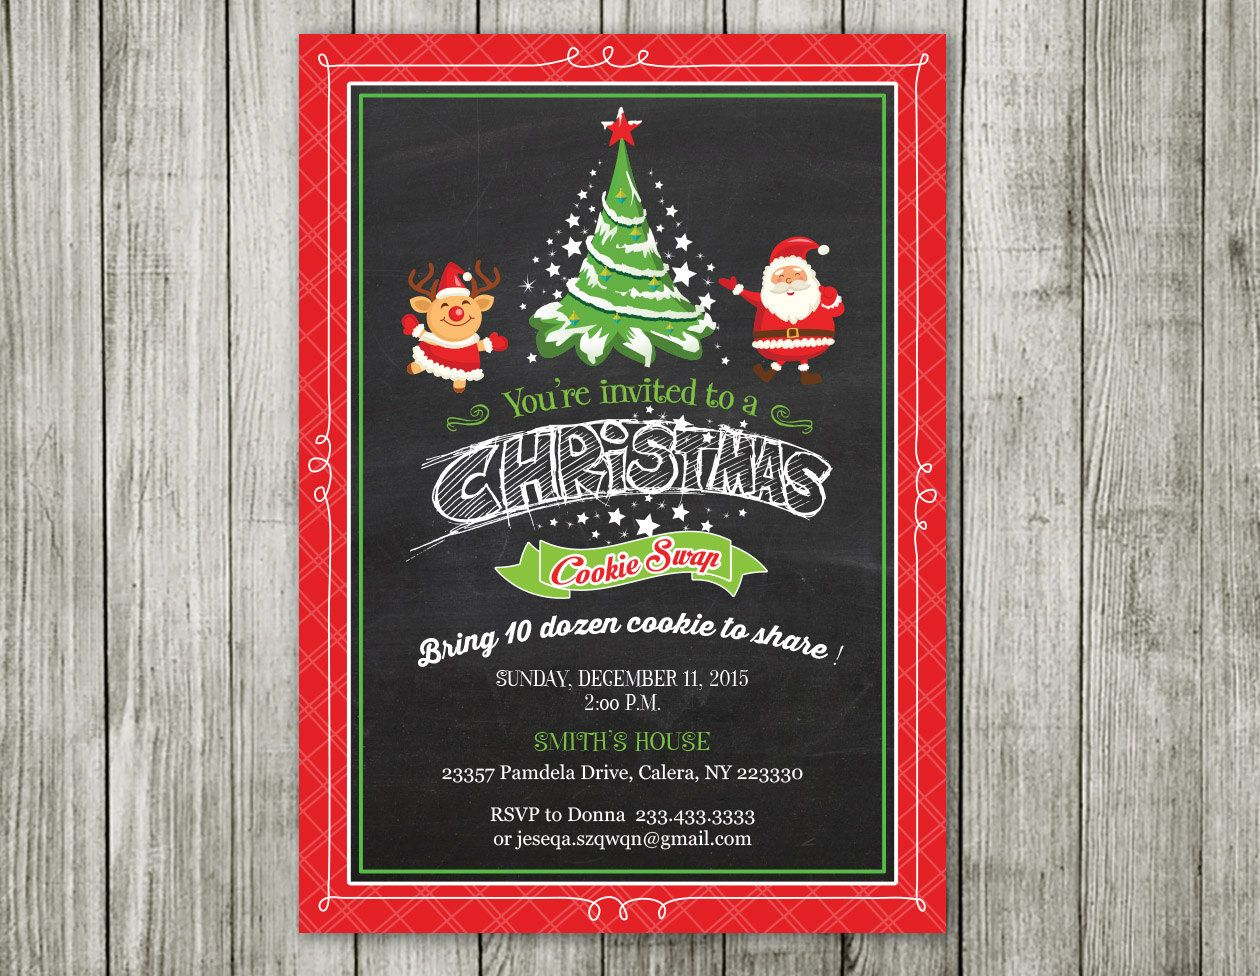 free ecard christmas party invitations%0A Christmas Invitation  Christmas Party Invitation  Christmas Invite   Printable Christmas Invitation  santa invitation